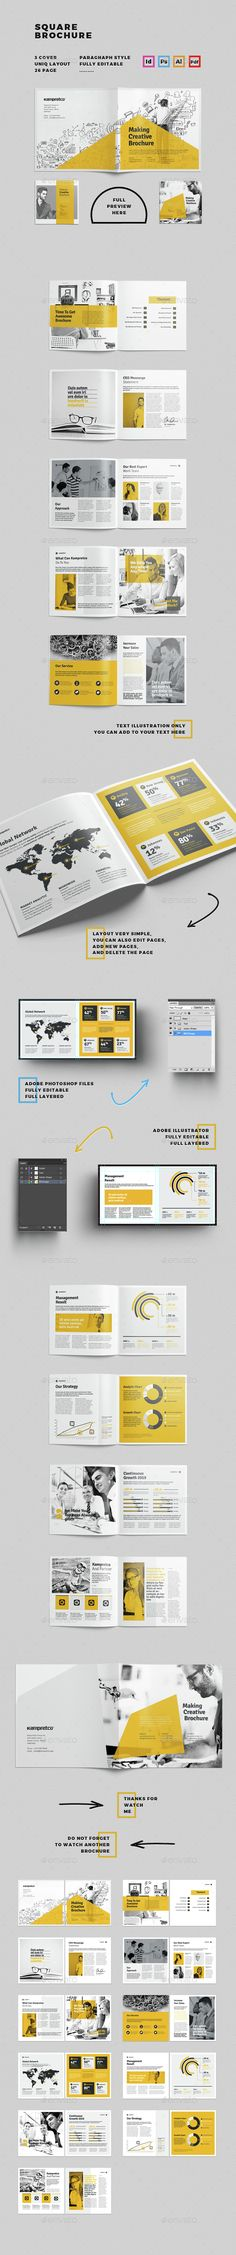 Brochure - Corporate Brochures | Download http://graphicriver.net/item/brochure/15293602?ref=sinzo